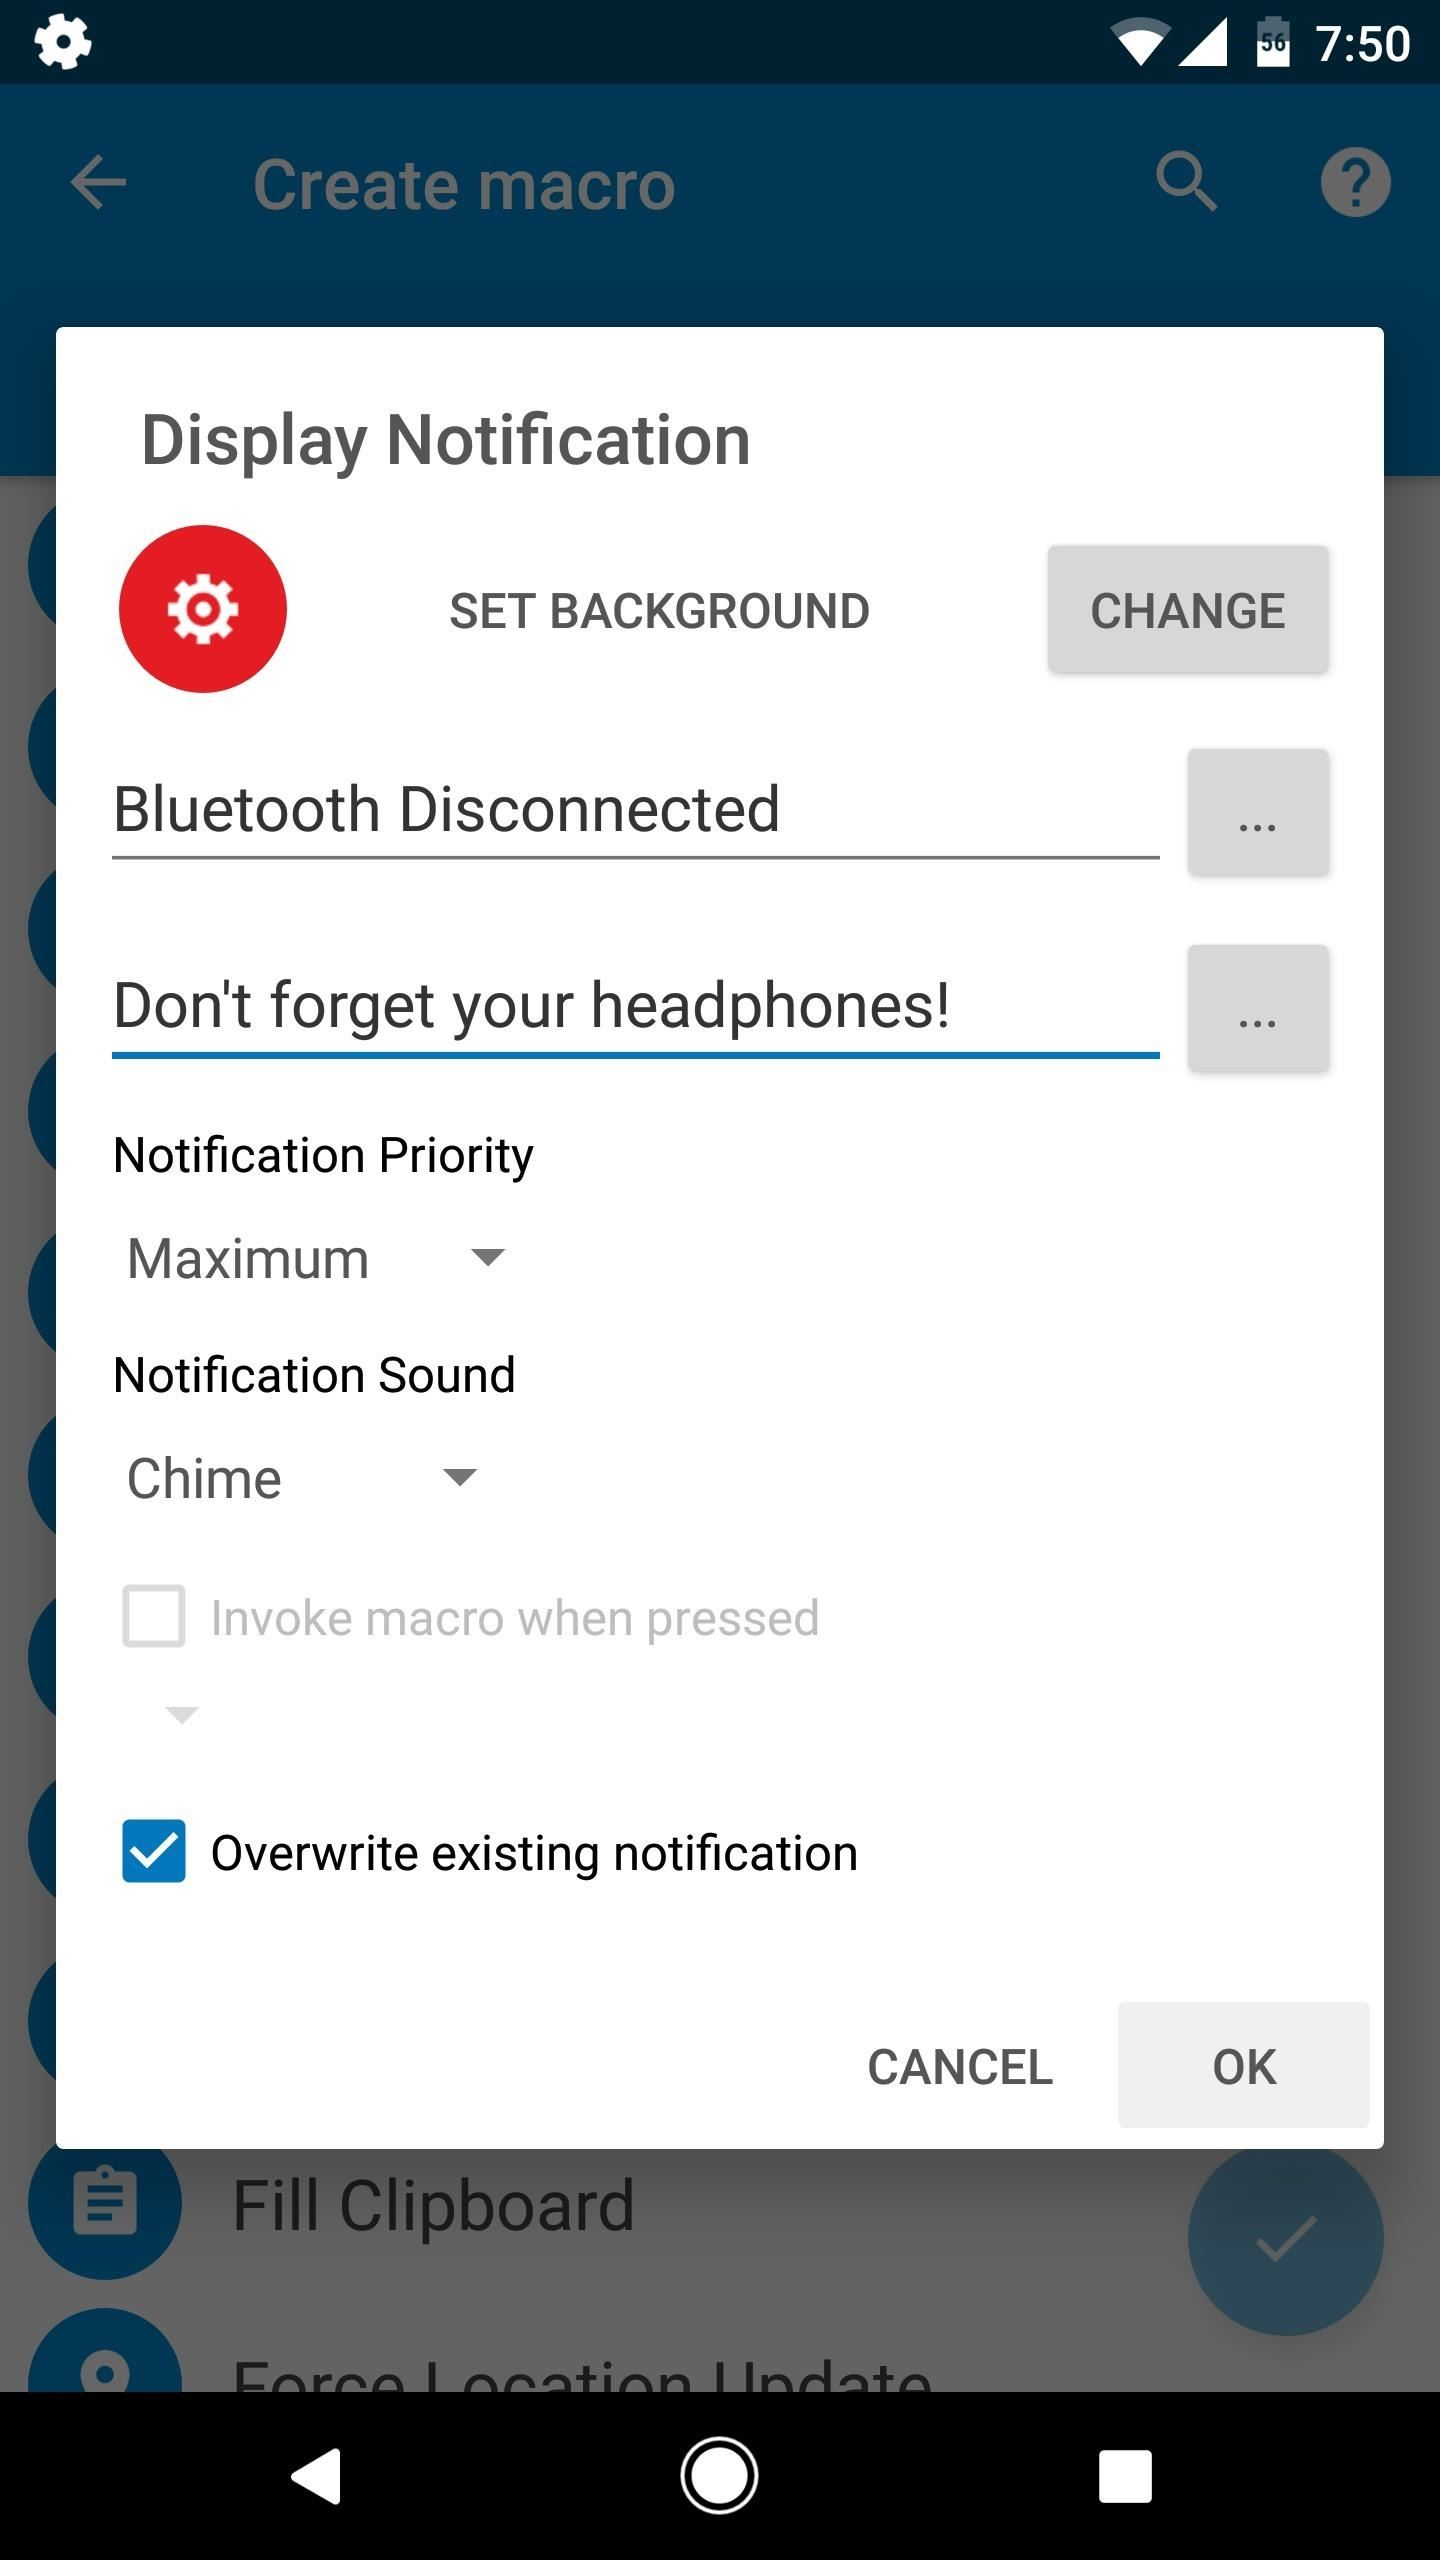 Set Up a Distress Signal on Android for Your Bluetooth Headphones (So You Never Leave Them Behind)